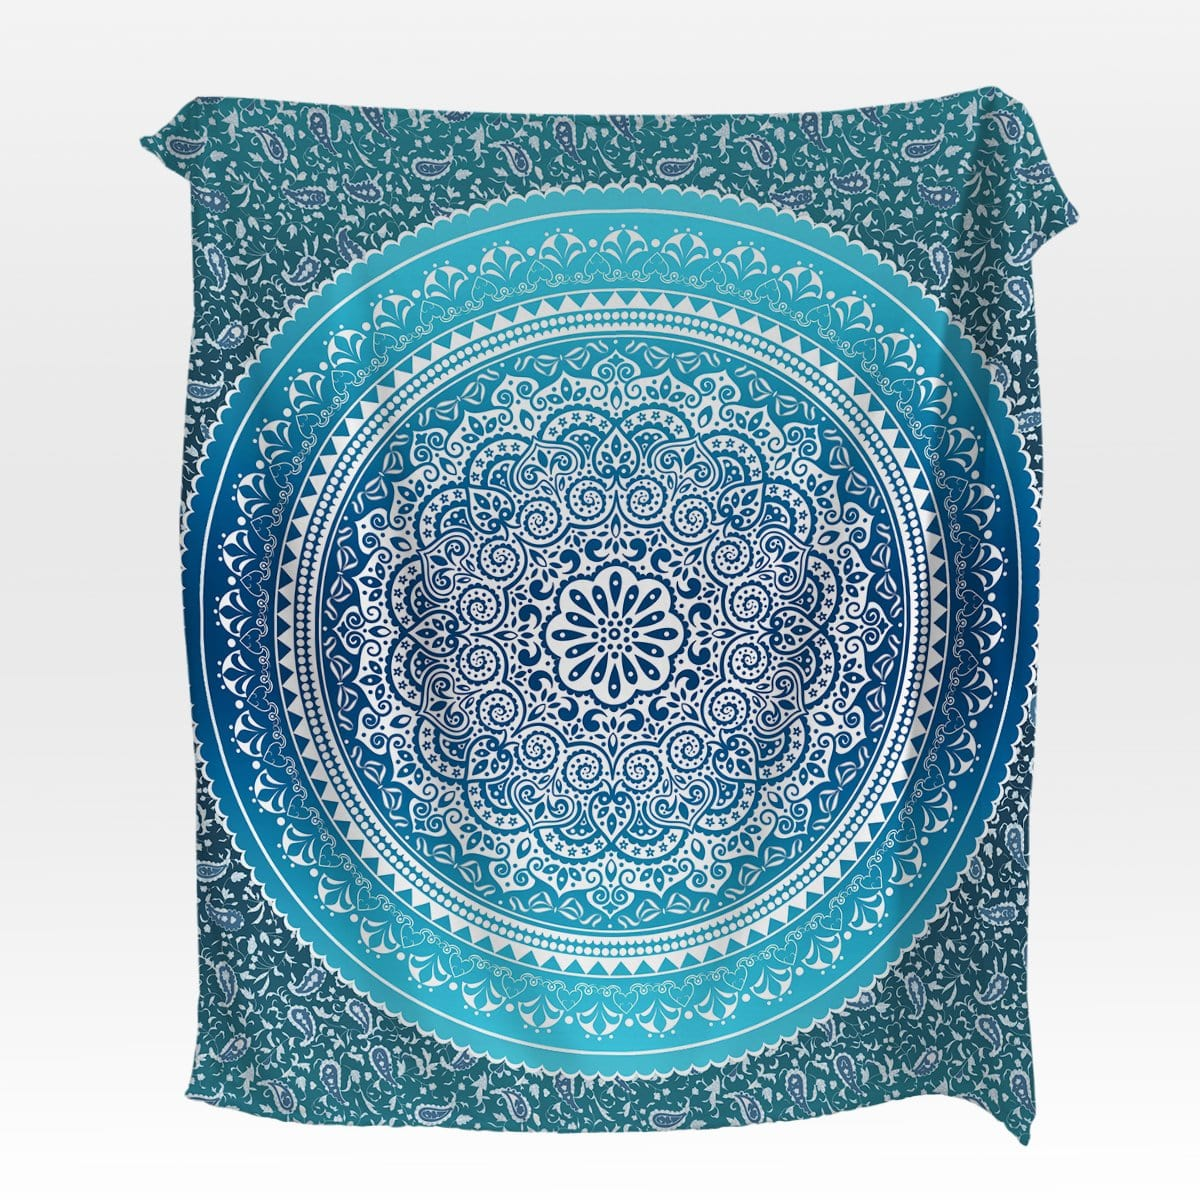 Sea Breeze Mandala Squiffy Minky Blanket-Kaleidoscope Mandala-Little Squiffy